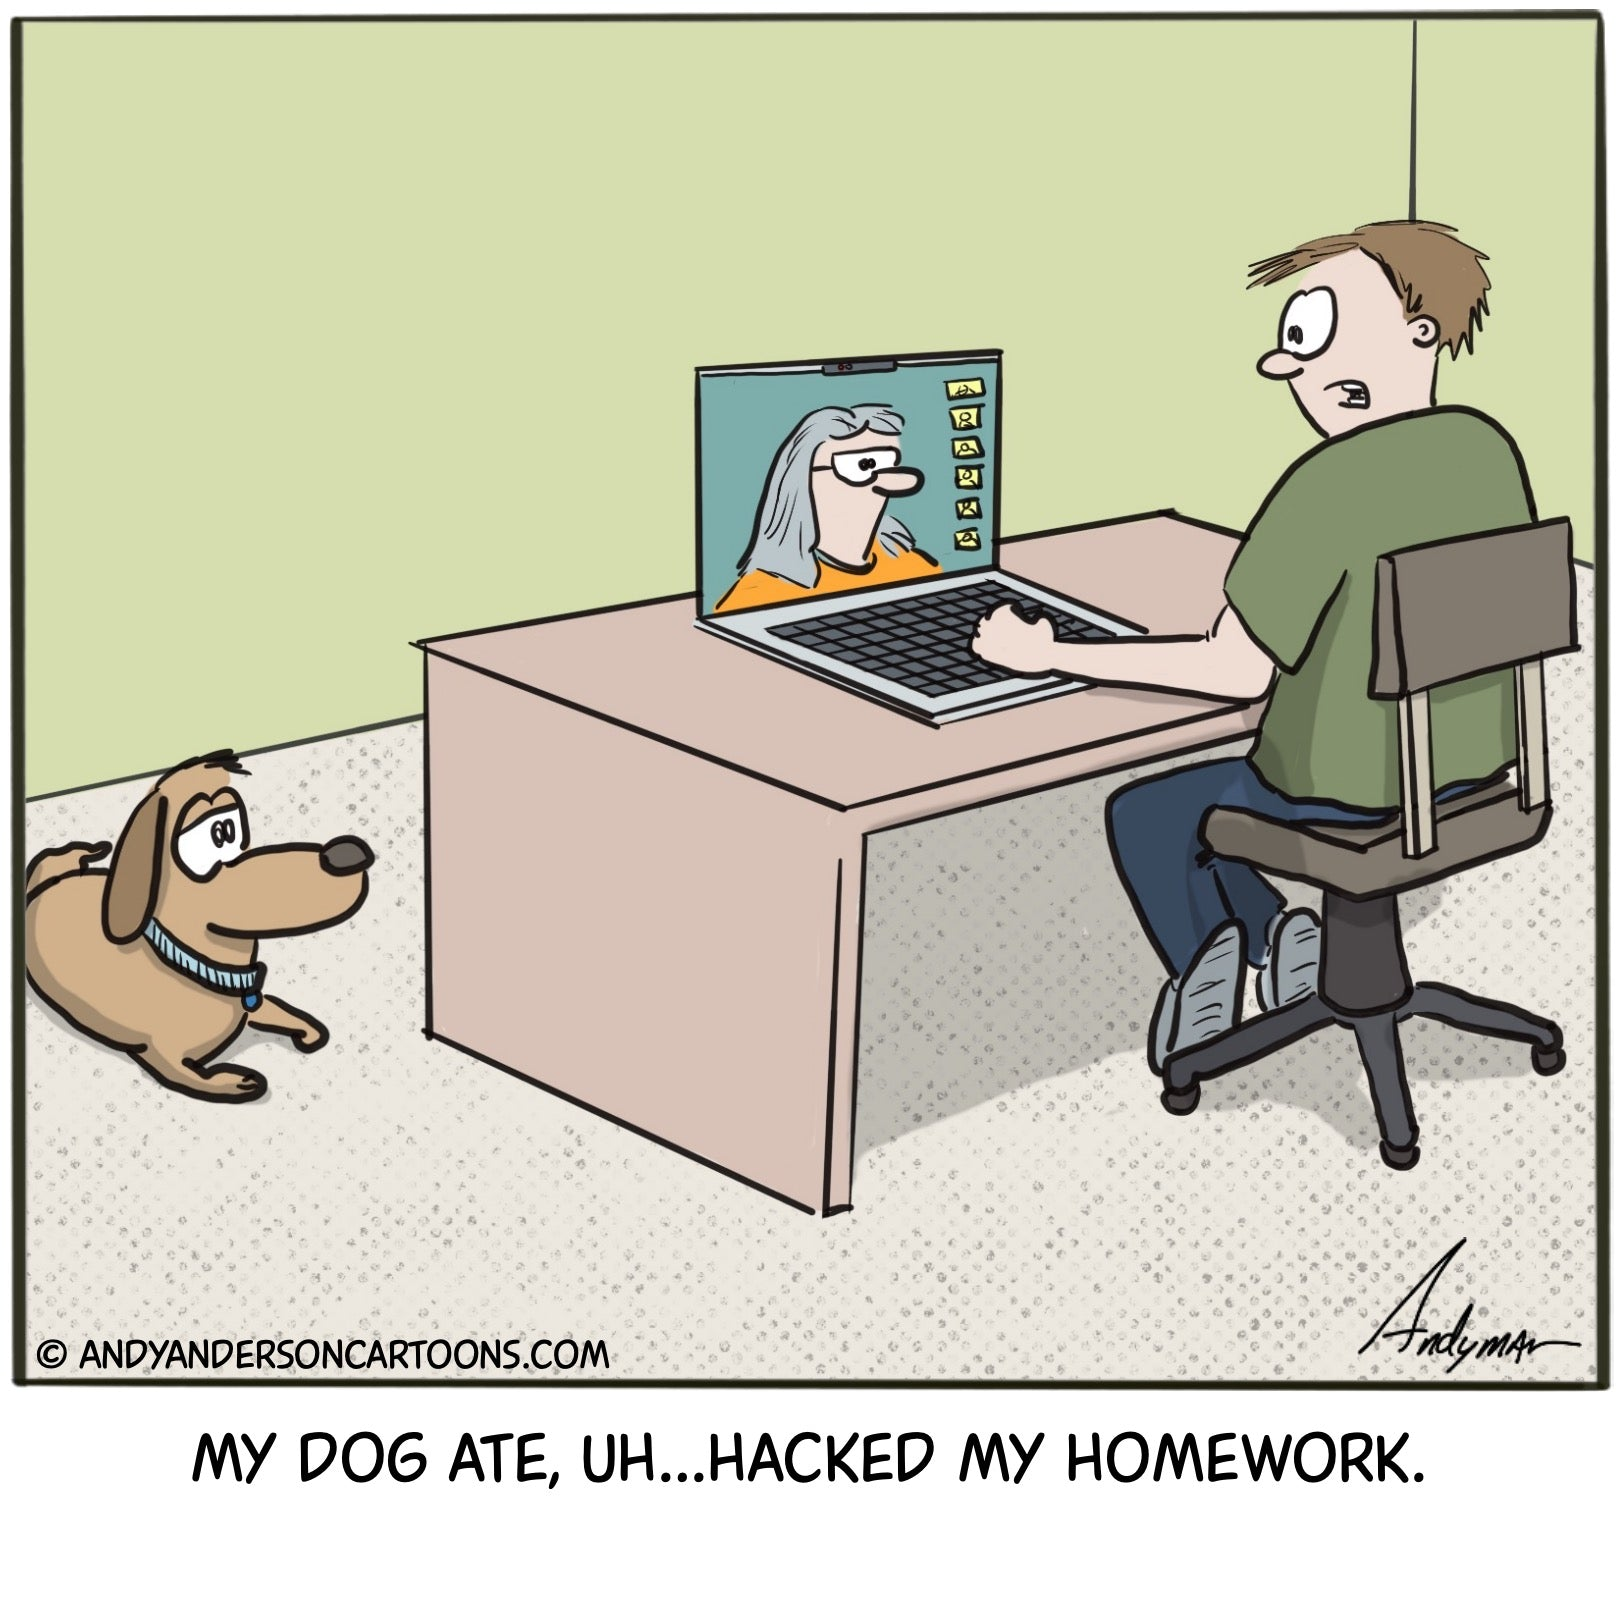 Cartoon about a student claiming his dog ate, er hacked his homework for online learning